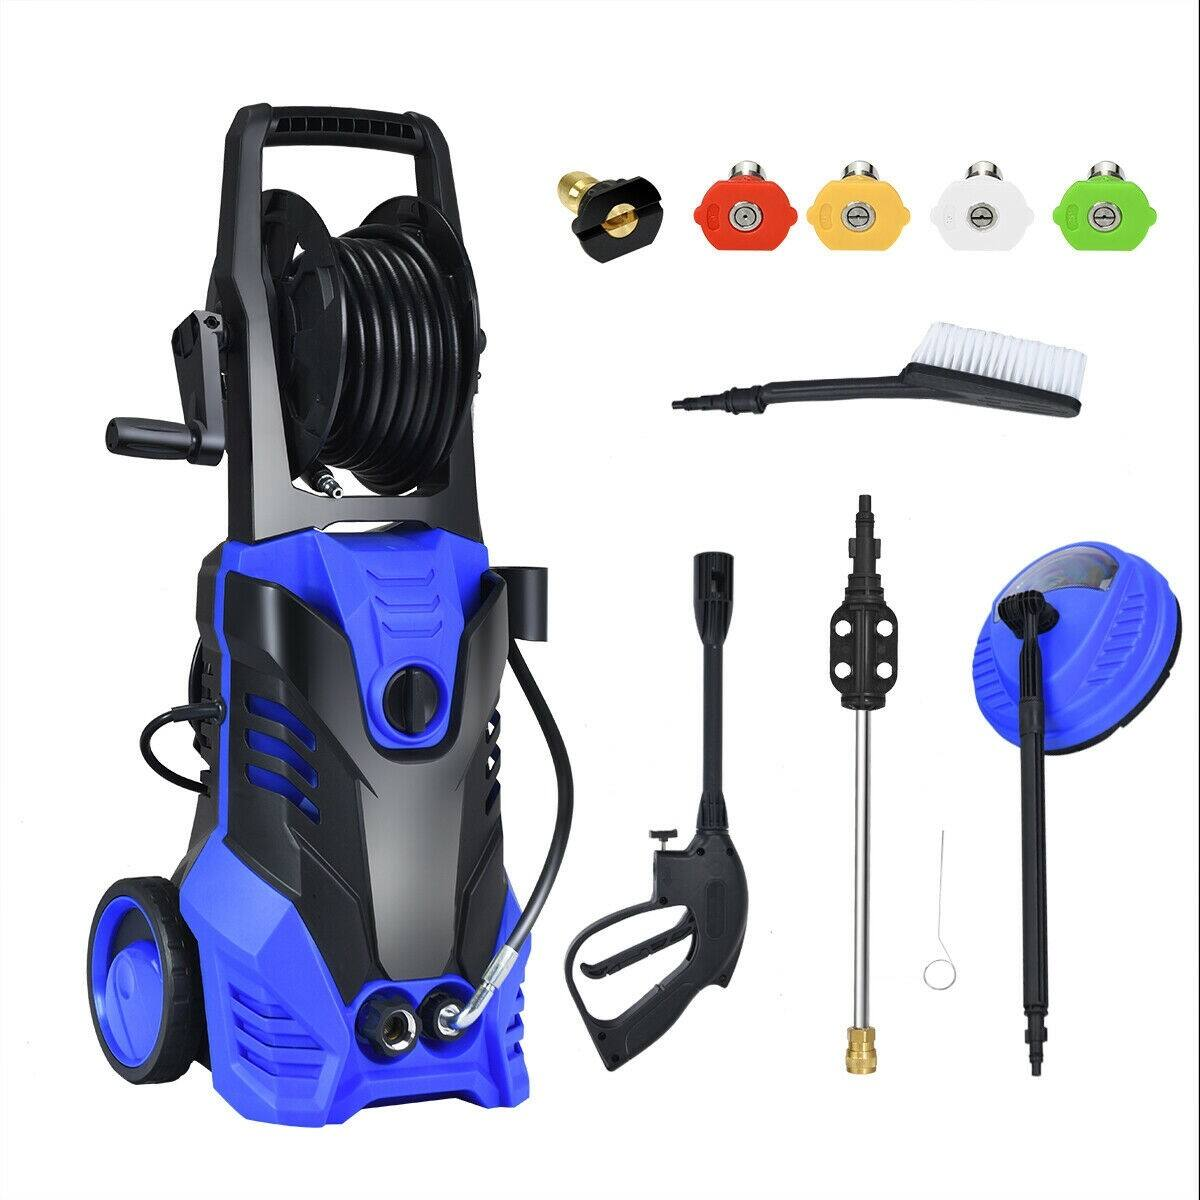 3000 PSI Electric High Pressure Washer With Patio Cleaner $122.95 + FS